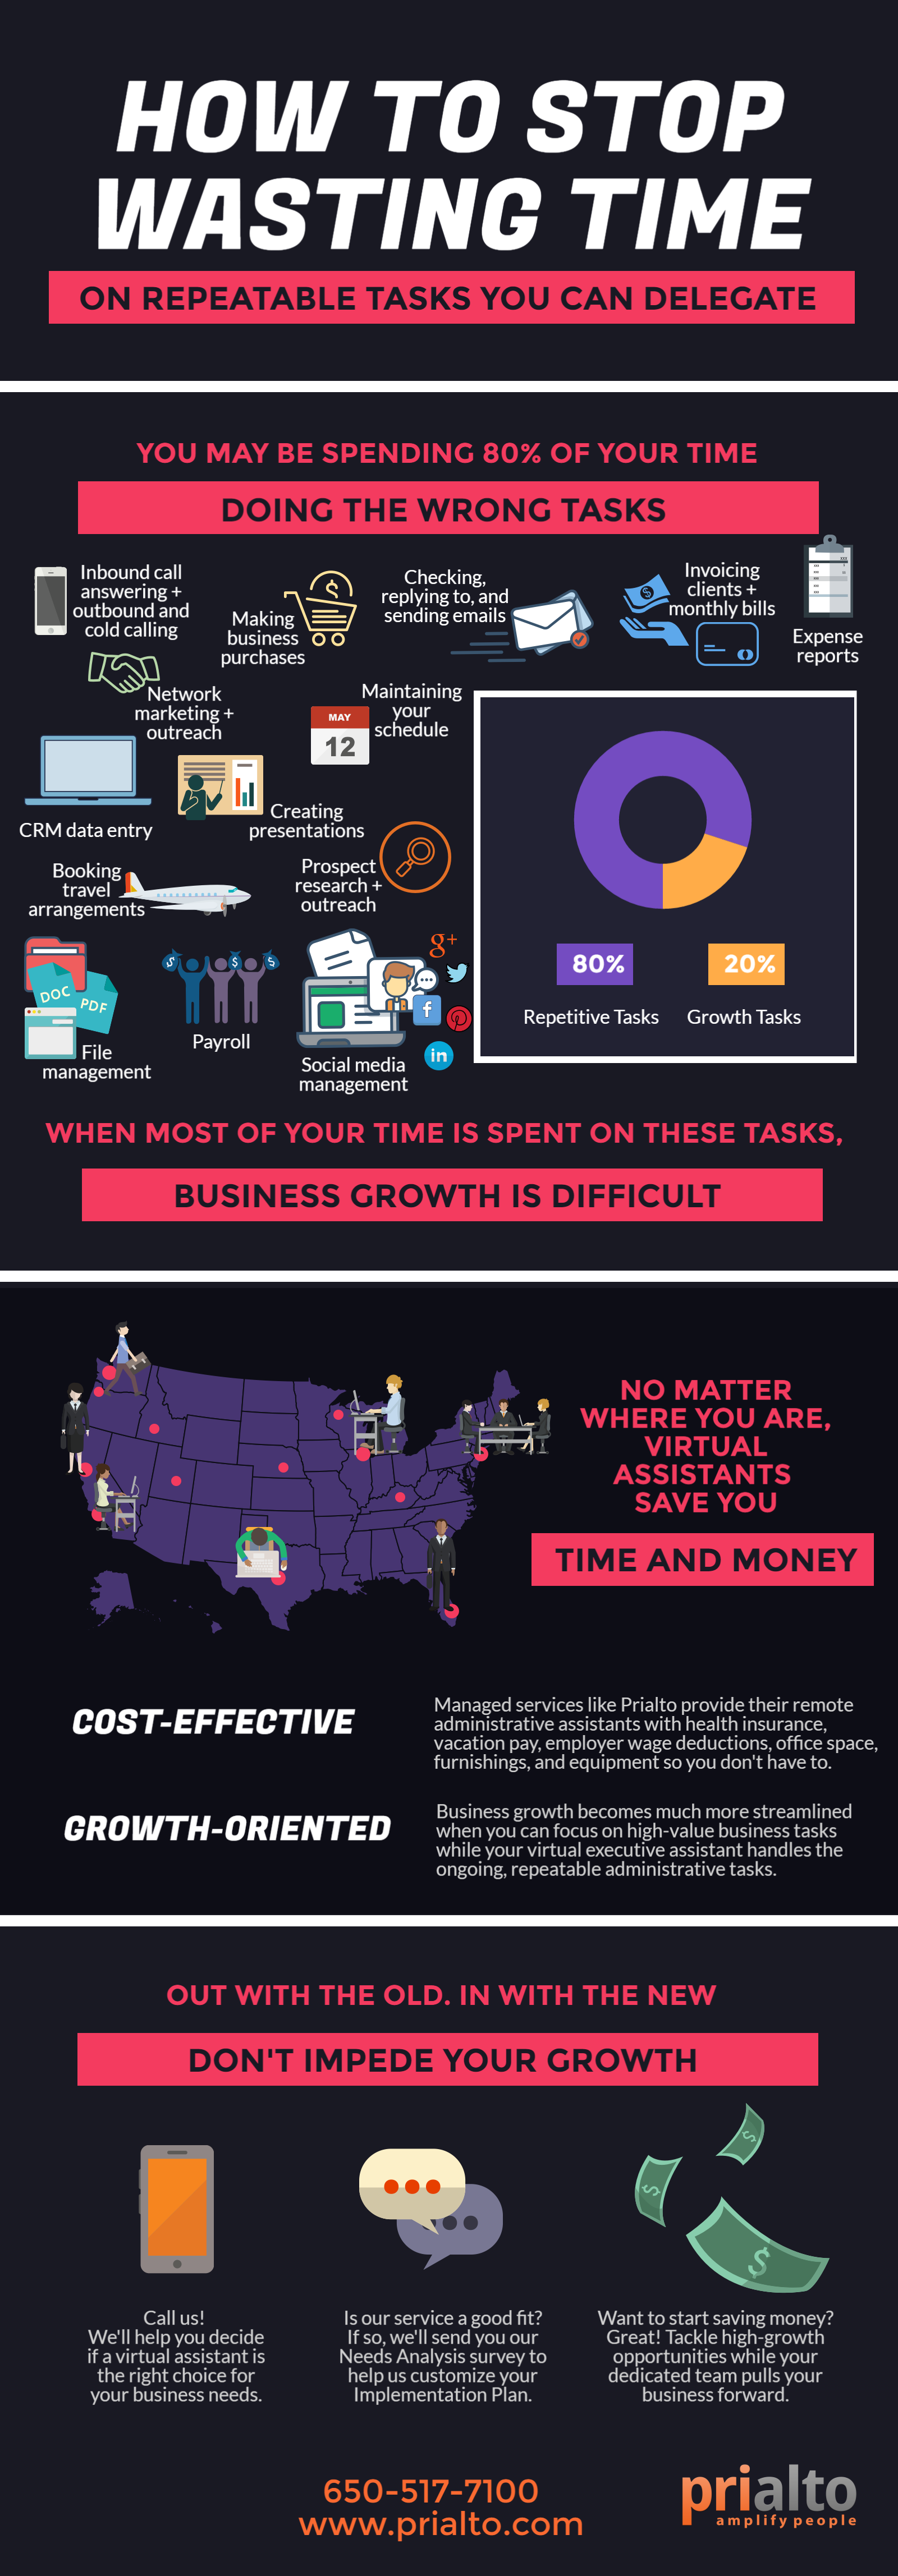 How to Stop Wasting Time on Repeatable Tasks You Can Delegate (infographic large).png